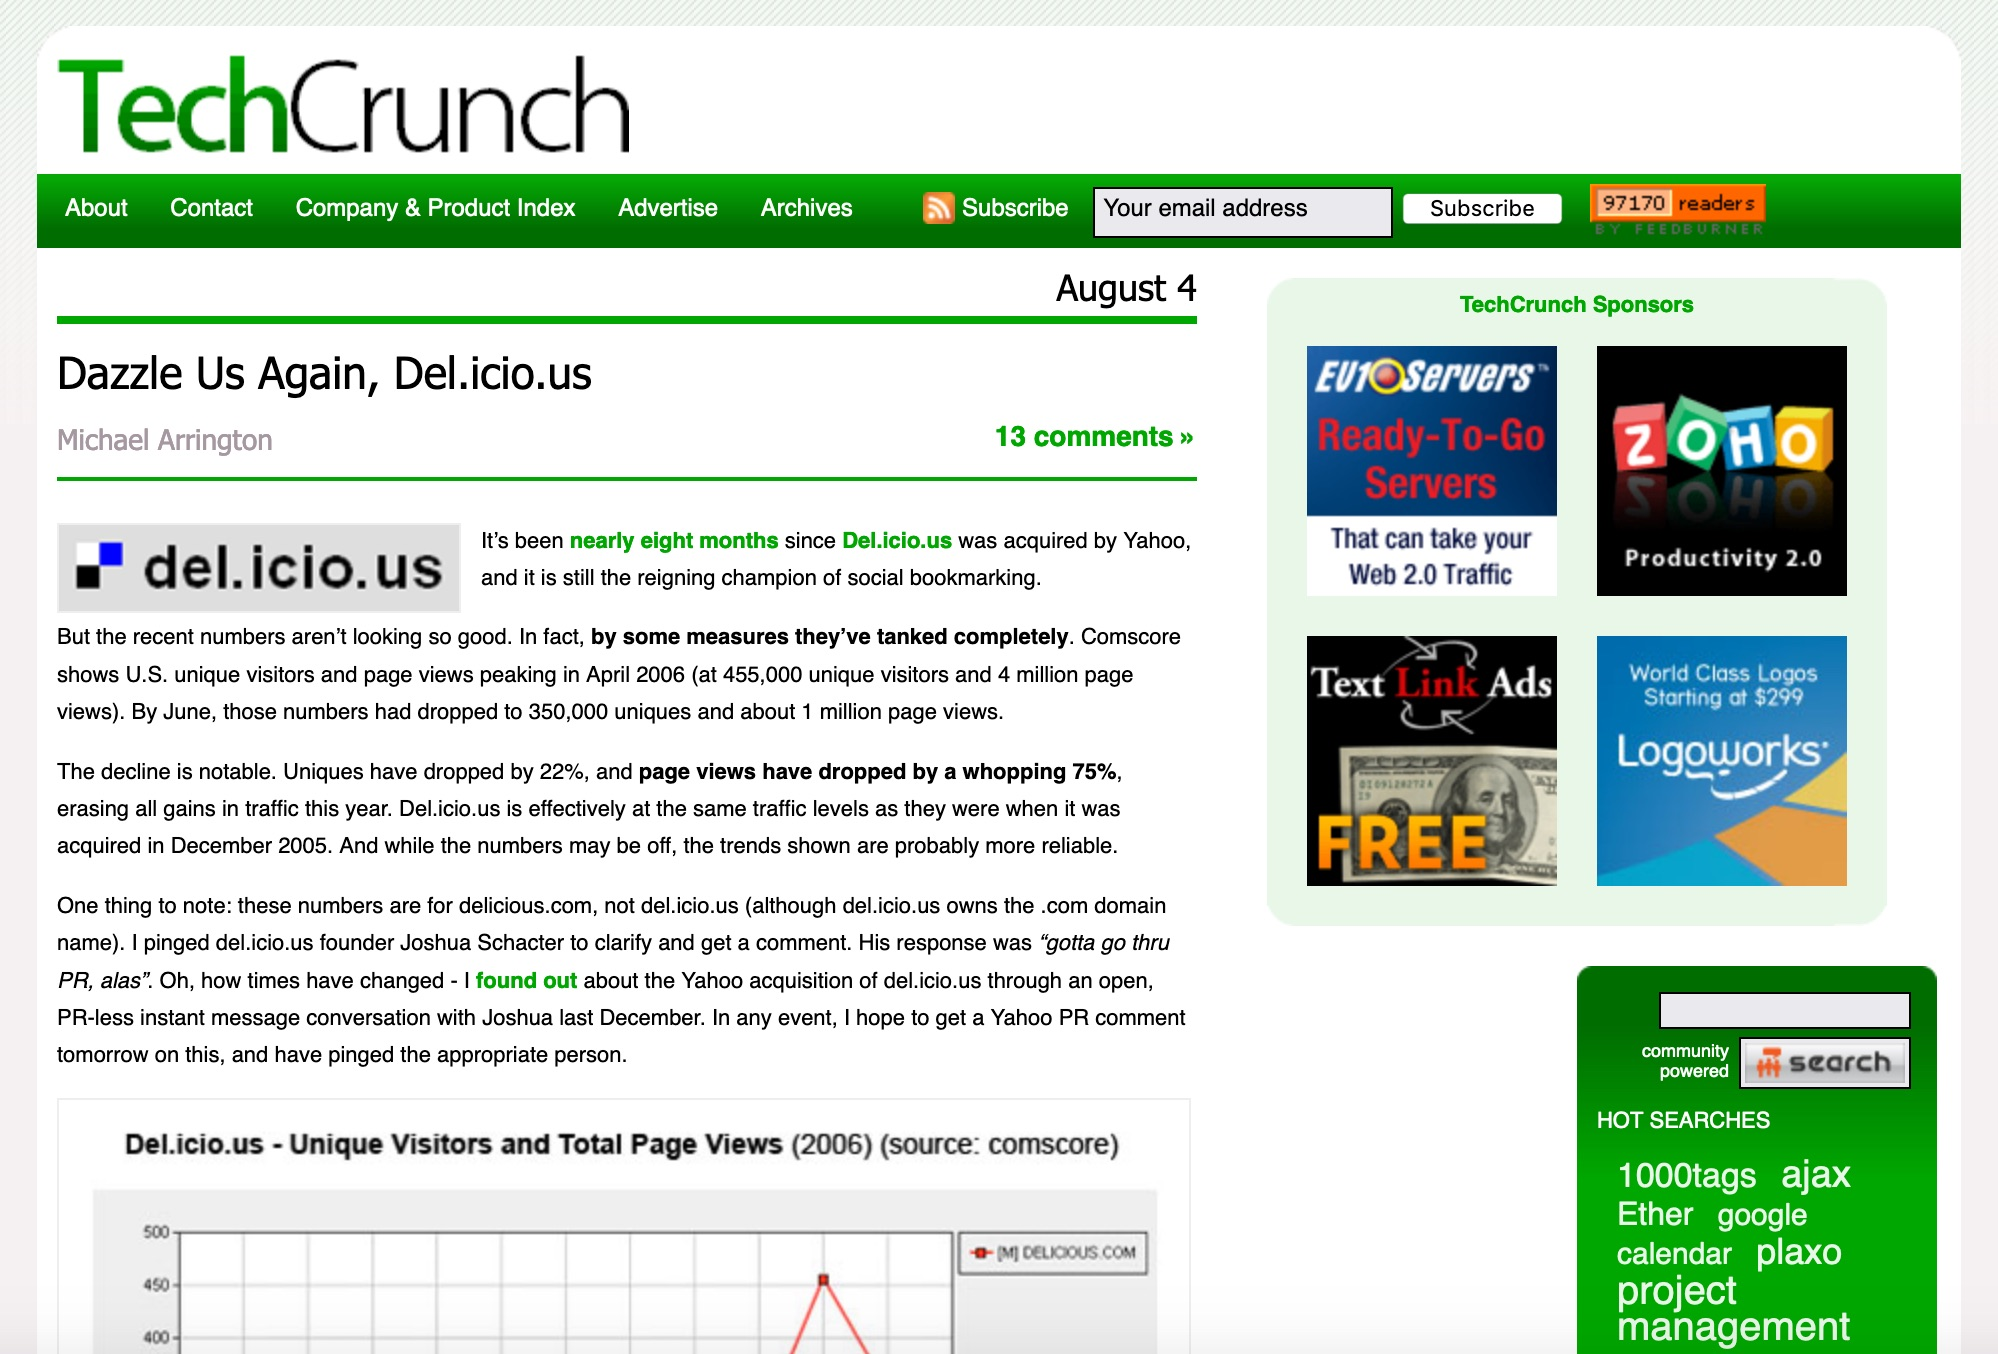 TechCrunch shifts to green color scheme (2006)